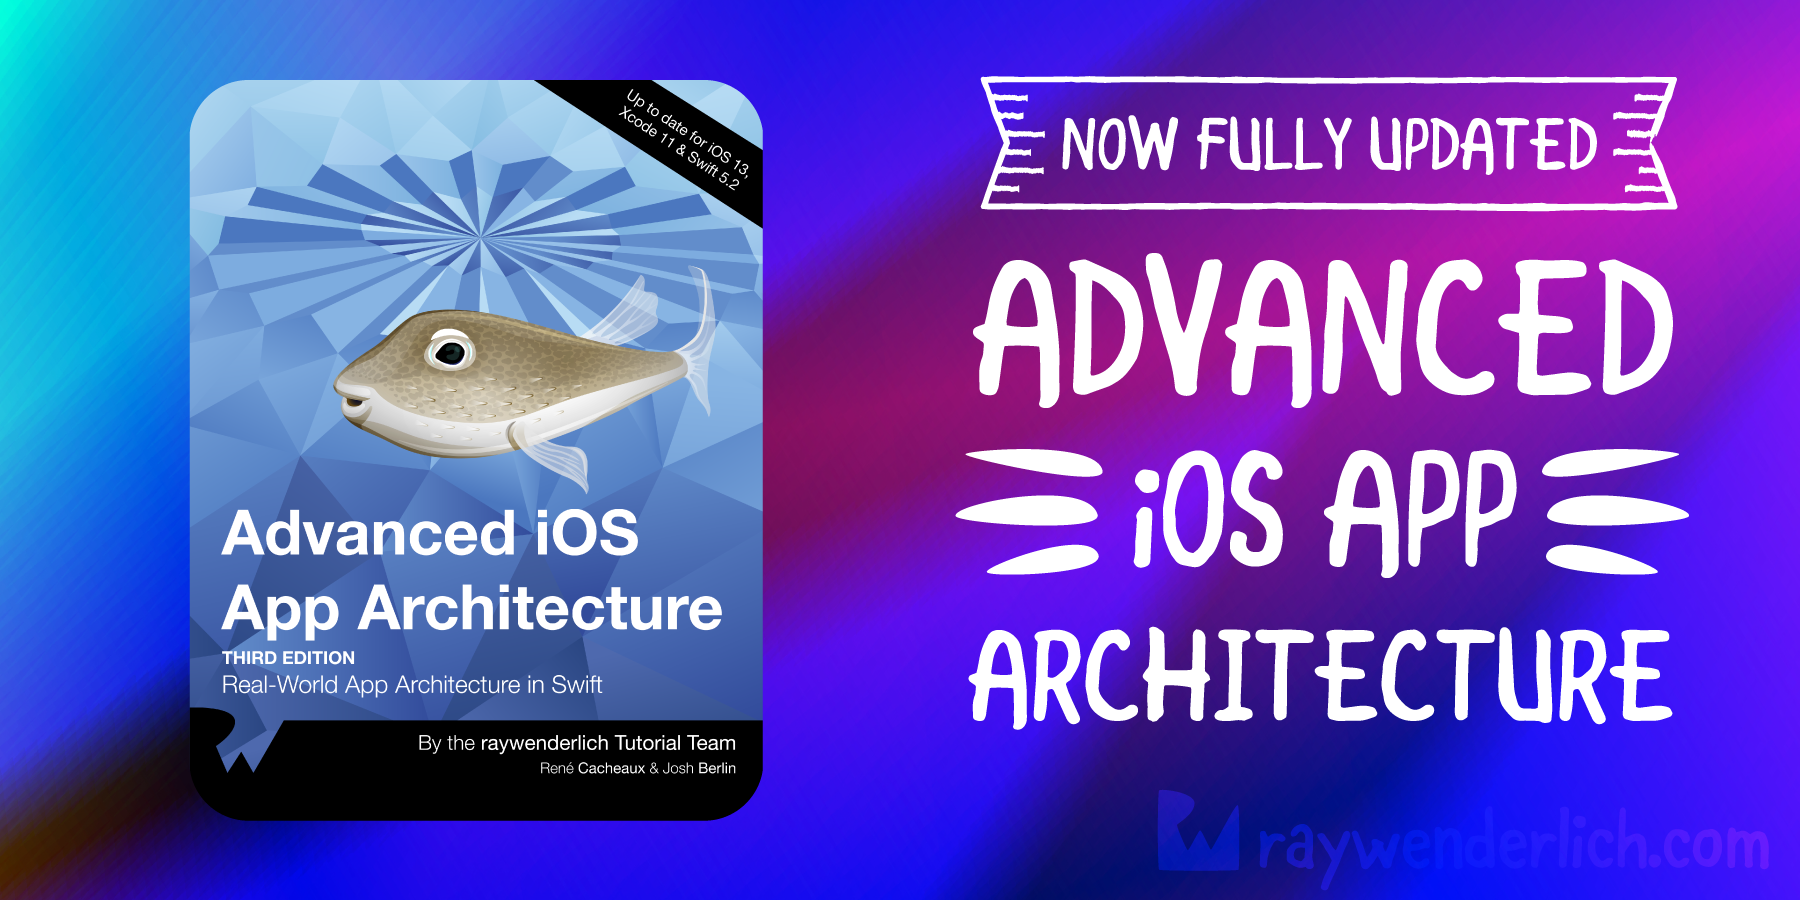 Advanced iOS App Architecture Now Fully Updated! [FREE]